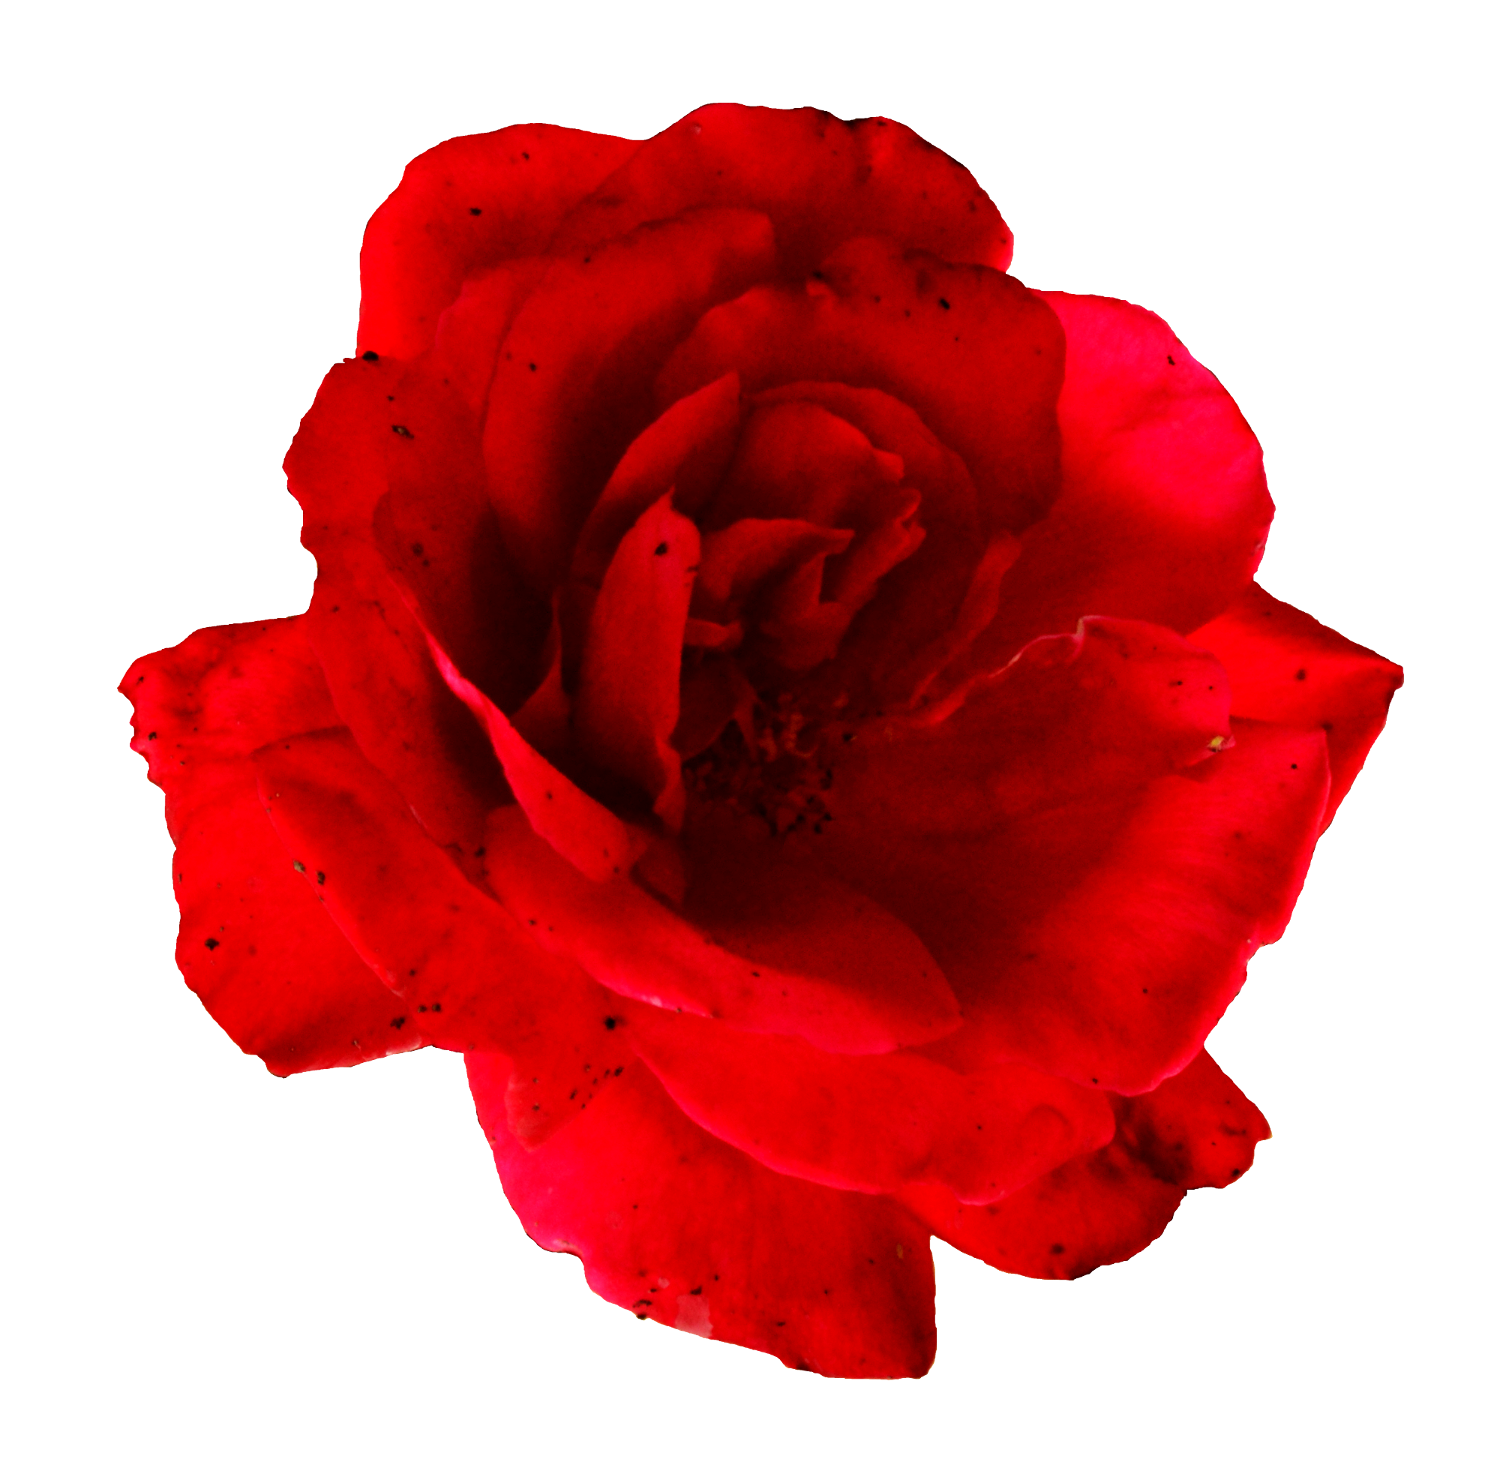 Red roses png. Flower rose image